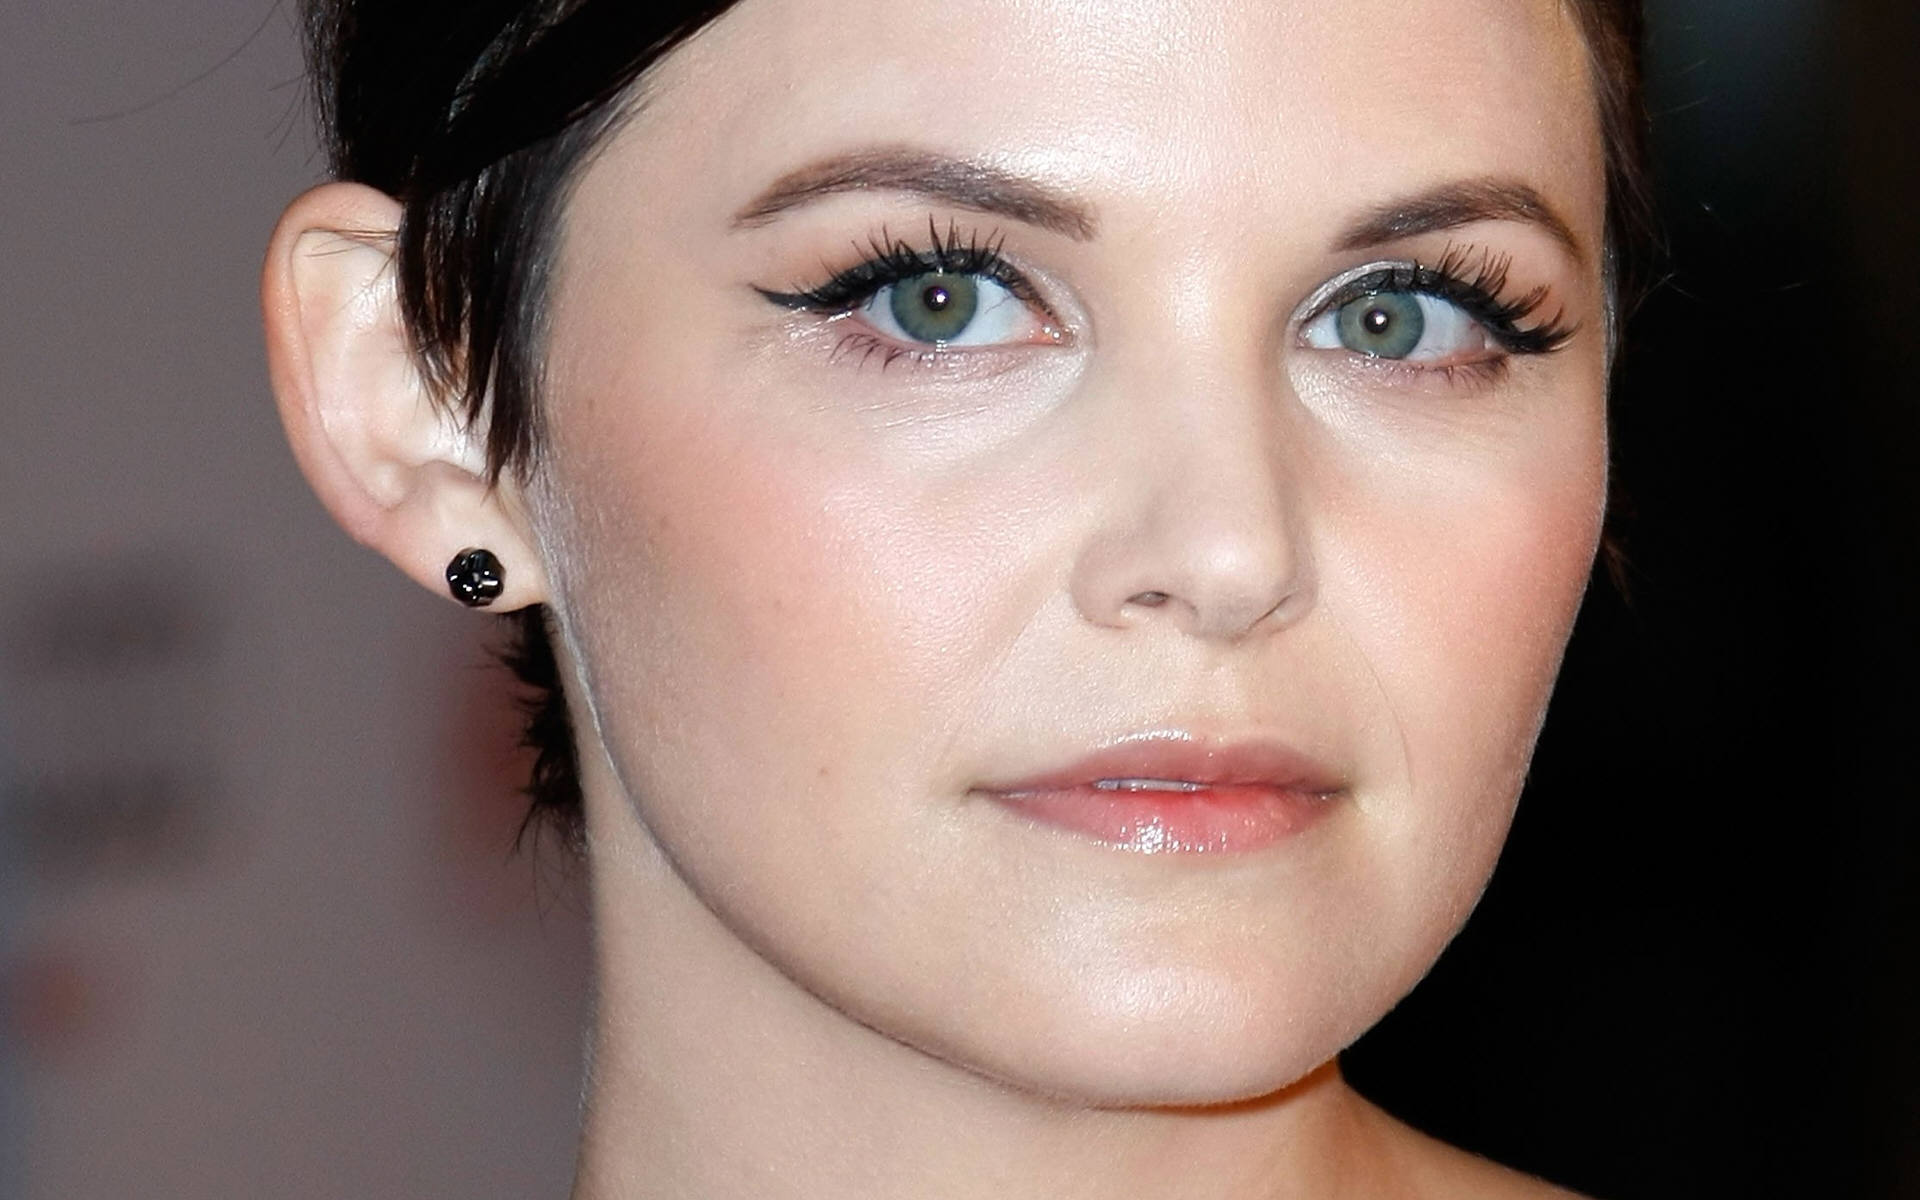 images of Poze Rezolutie Mare Ginnifer Goodwin Actor Poza 62 Din 100